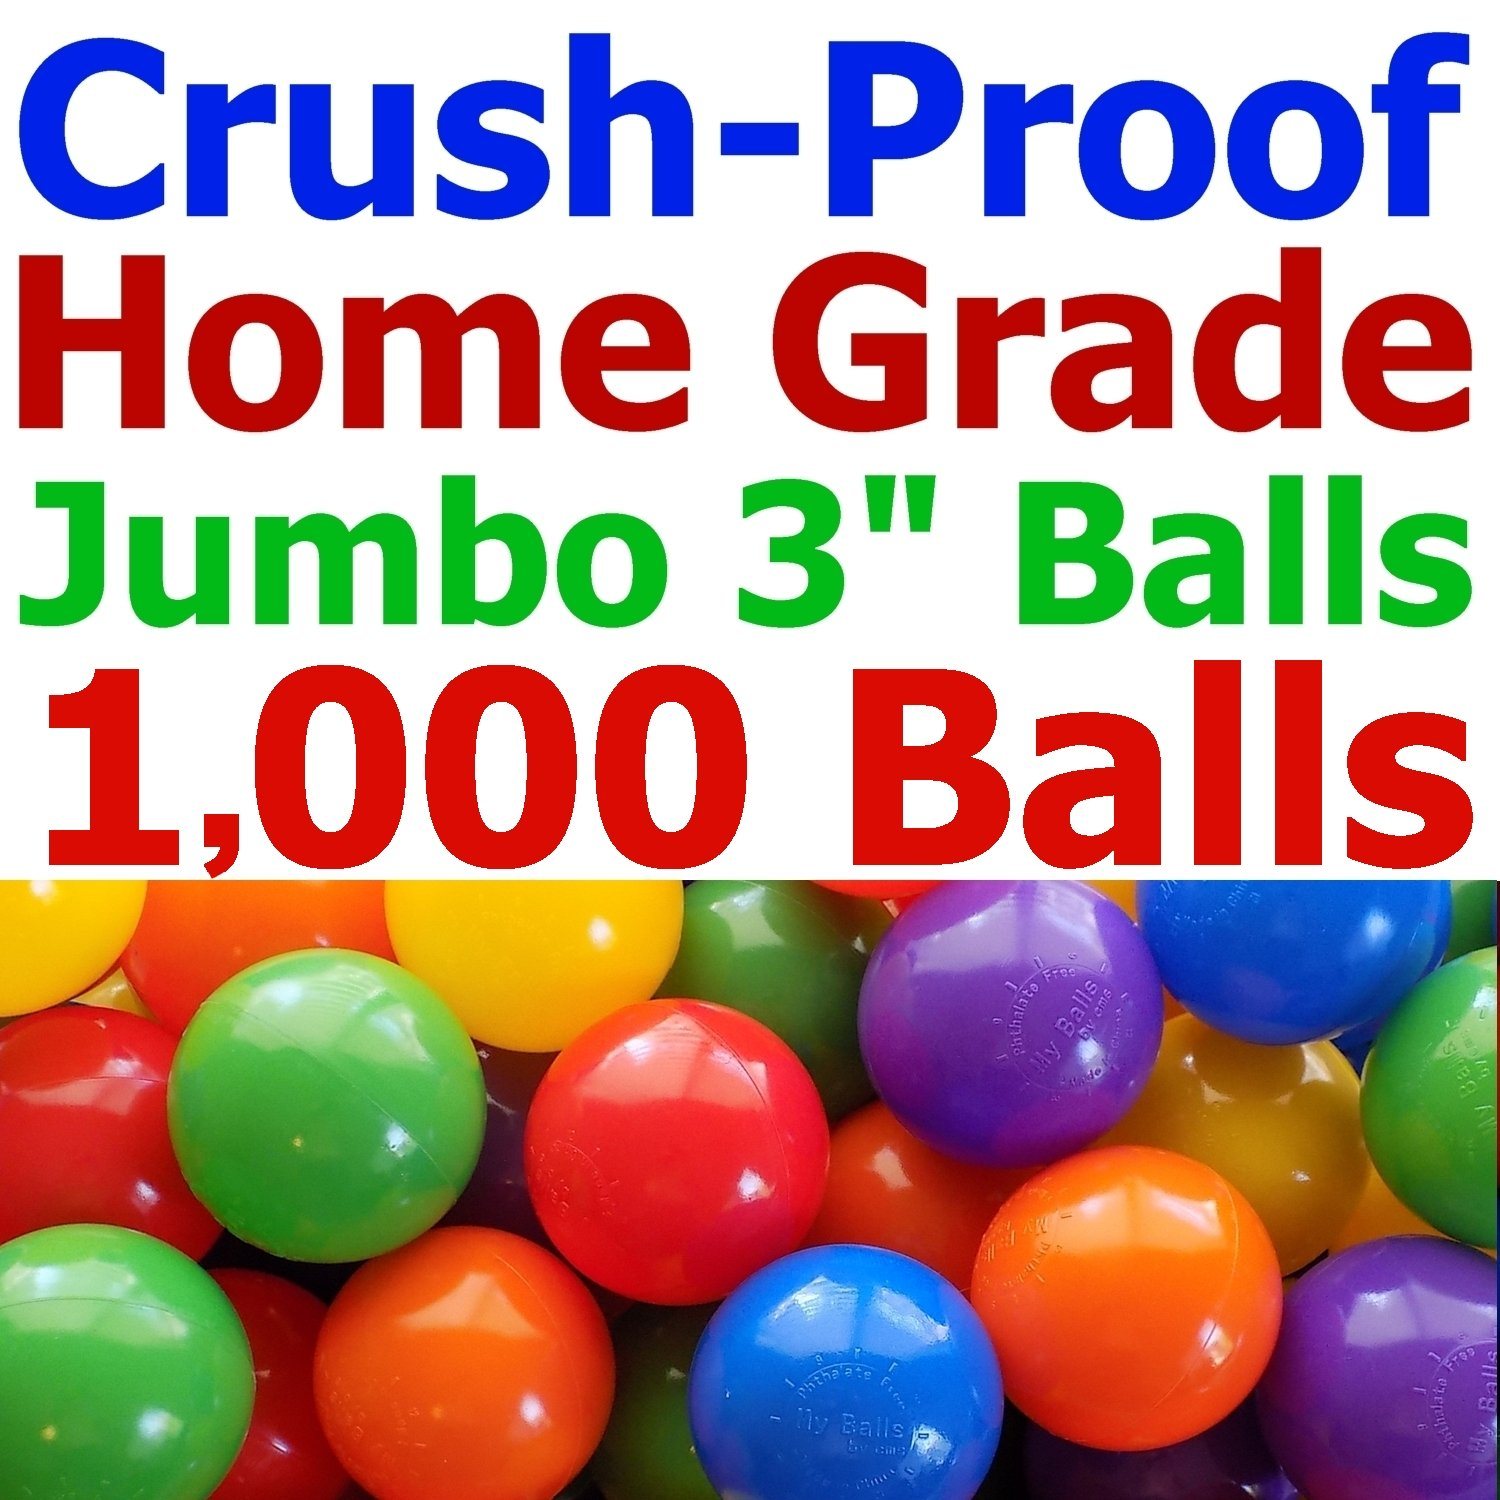 My Balls Pack of Jumbo 3'' Crush-Proof Ball Pit Balls - 5 Bright Colors, Phthalate Free, BPA Free, PVC Free, Non-Toxic, Non-Recycled Plastic by My Balls (Image #1)